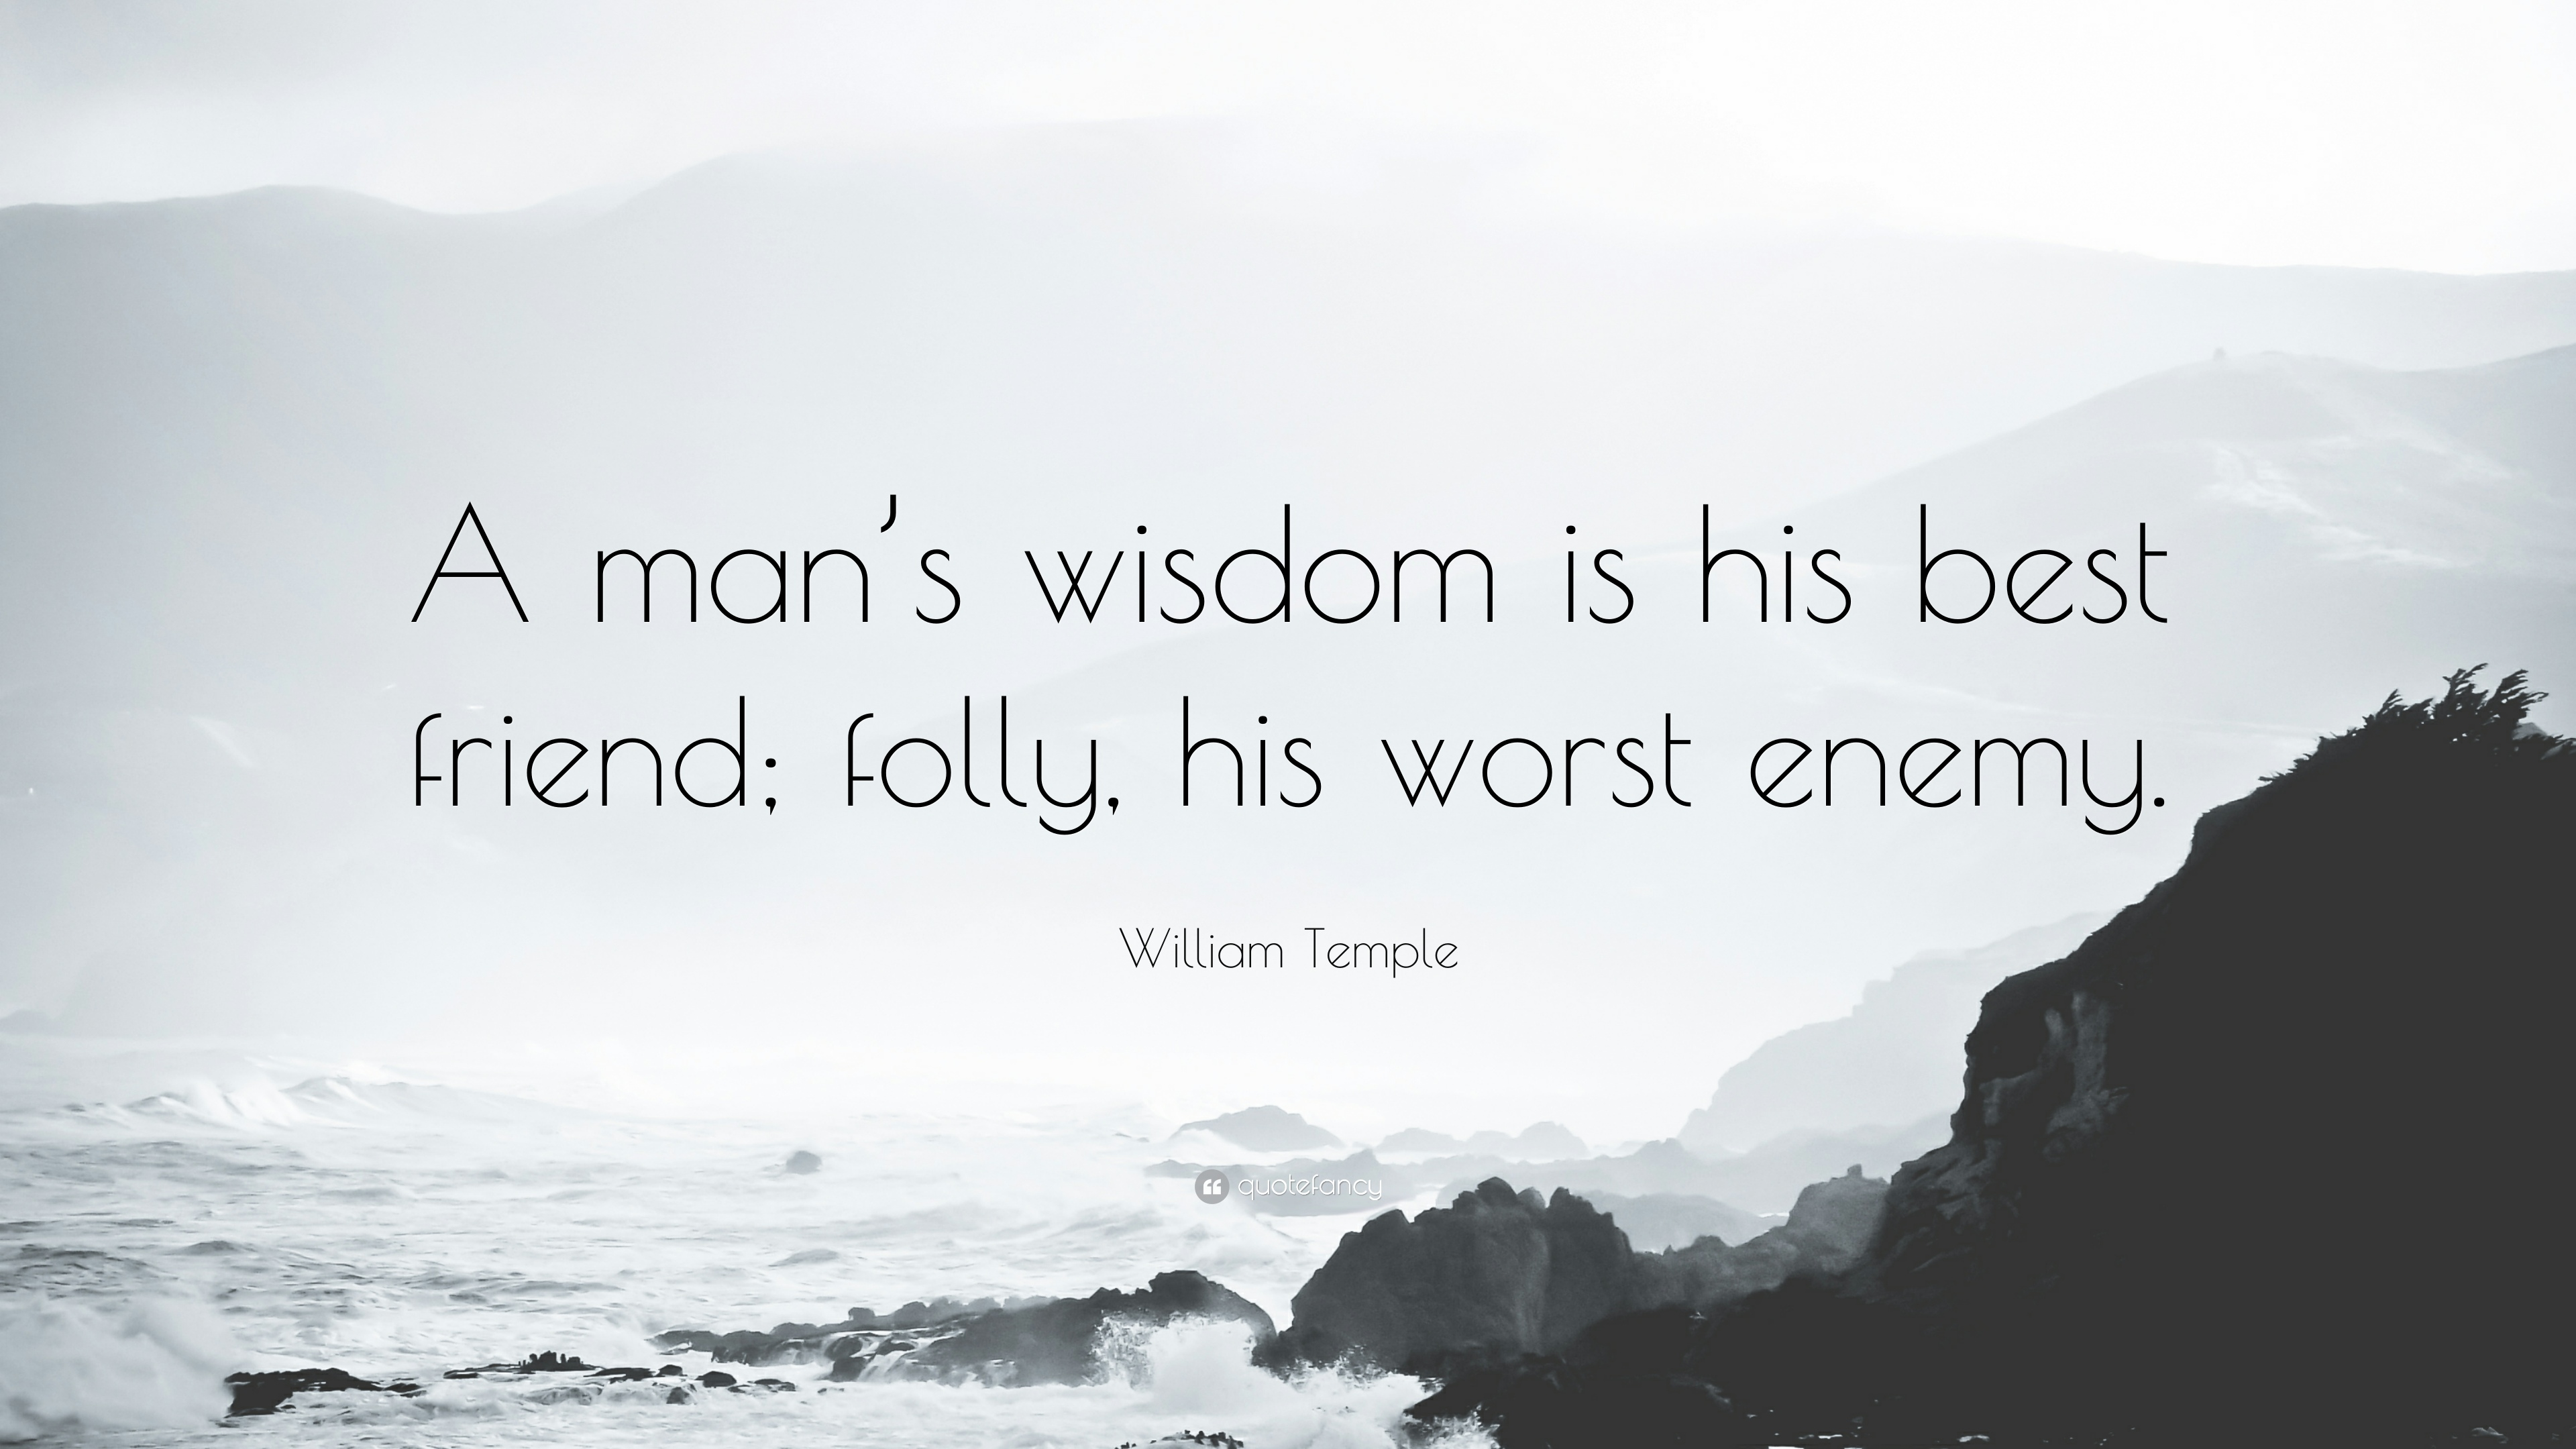 Man's wisdom is his best friend; folly his worst enemy.